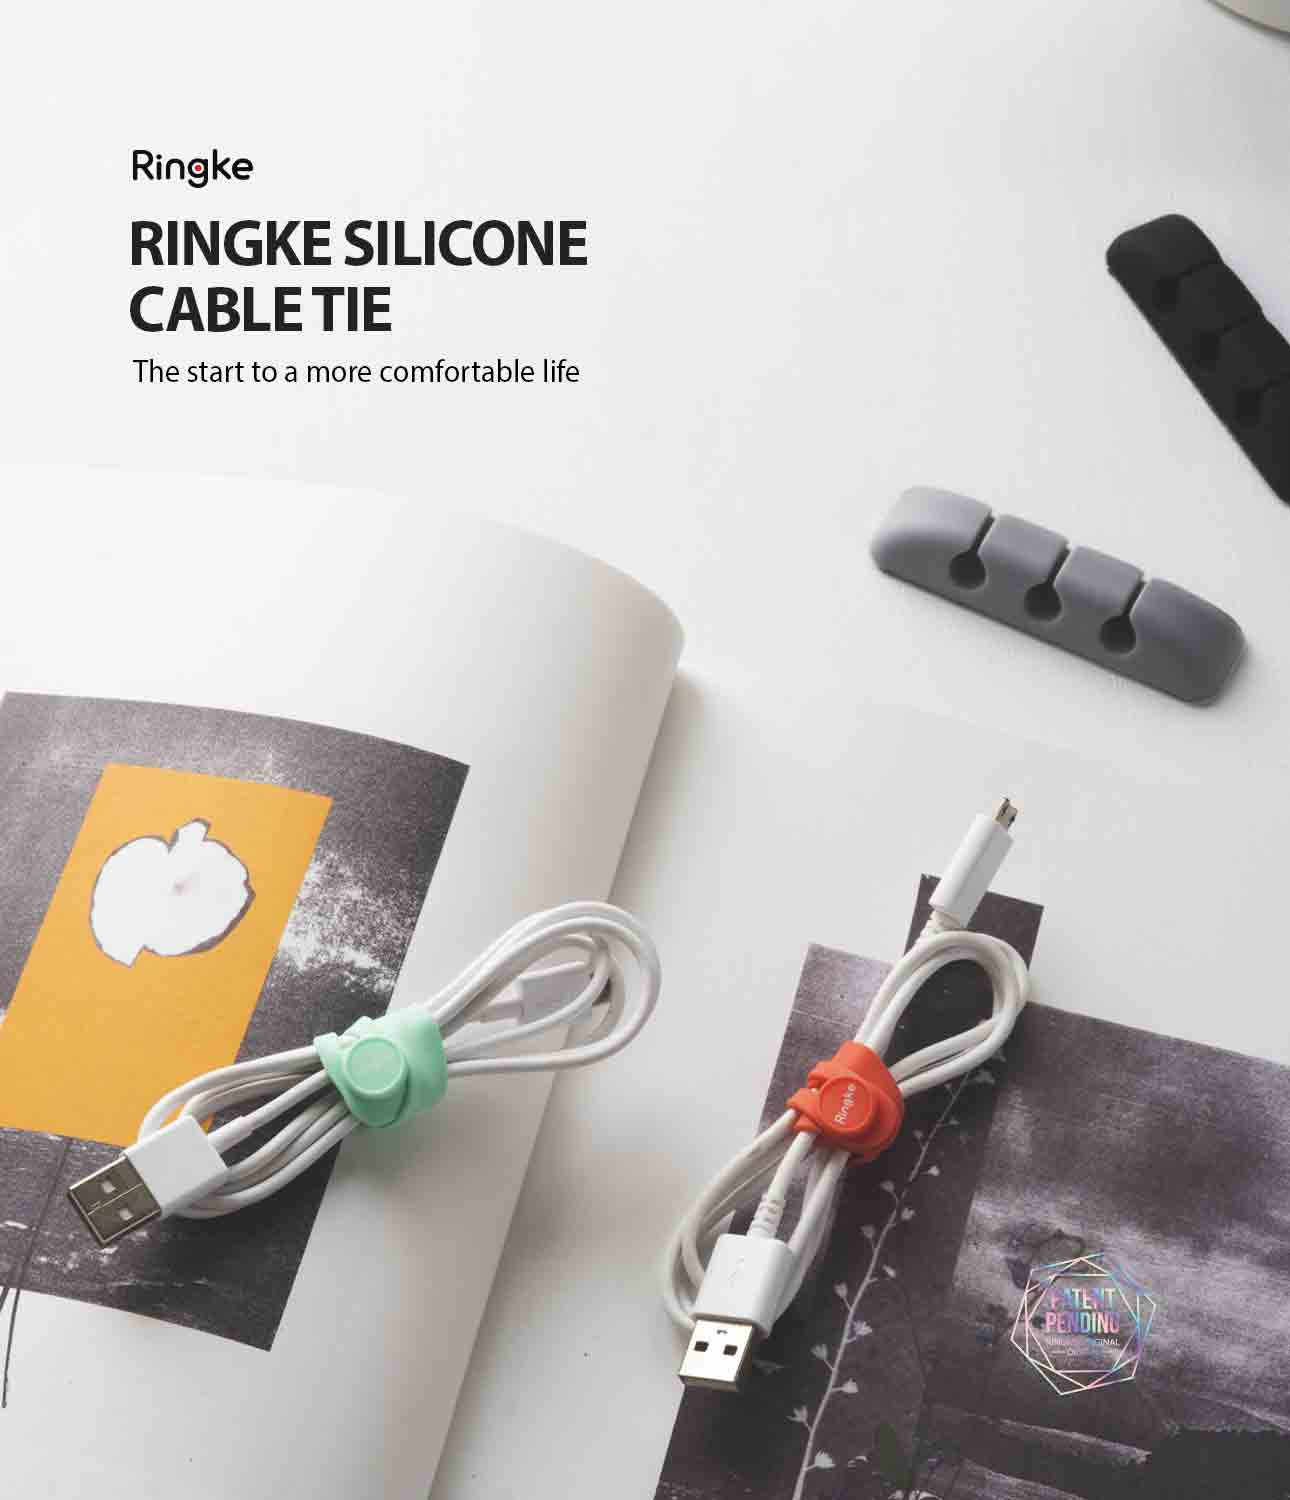 Ringke Cable Tie Silicone (15 Pack)